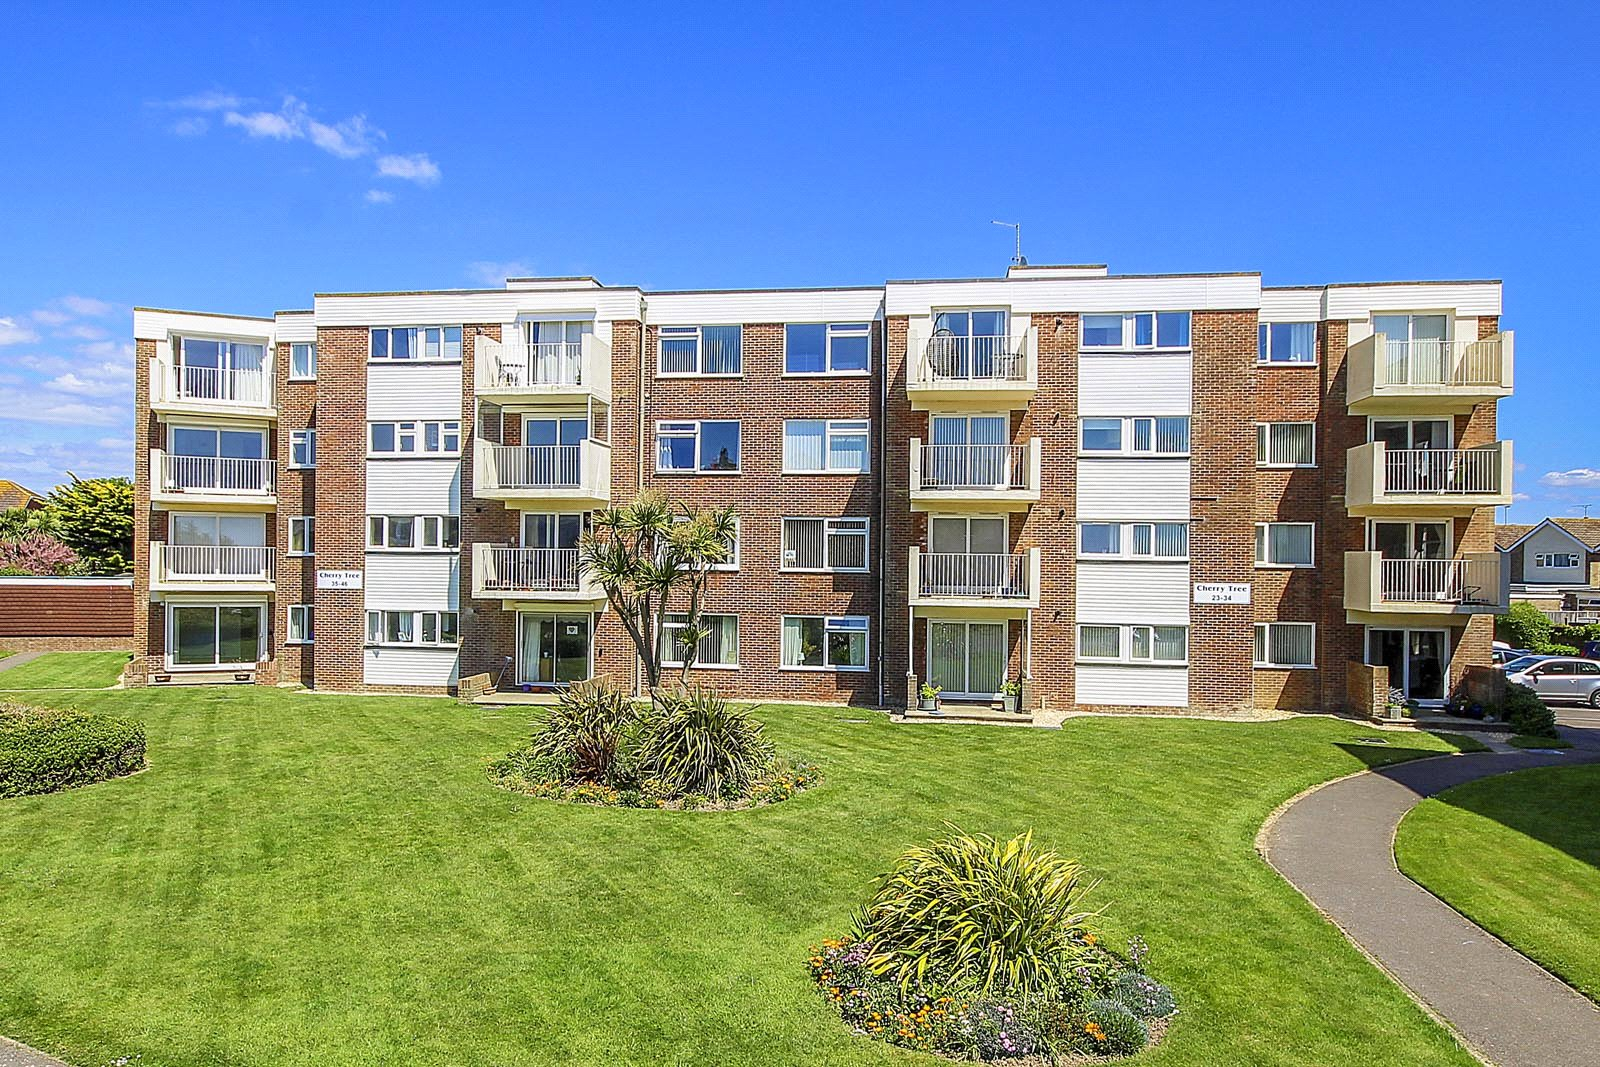 2 bed apartment for sale in Rustington, BN16 2ND, BN16